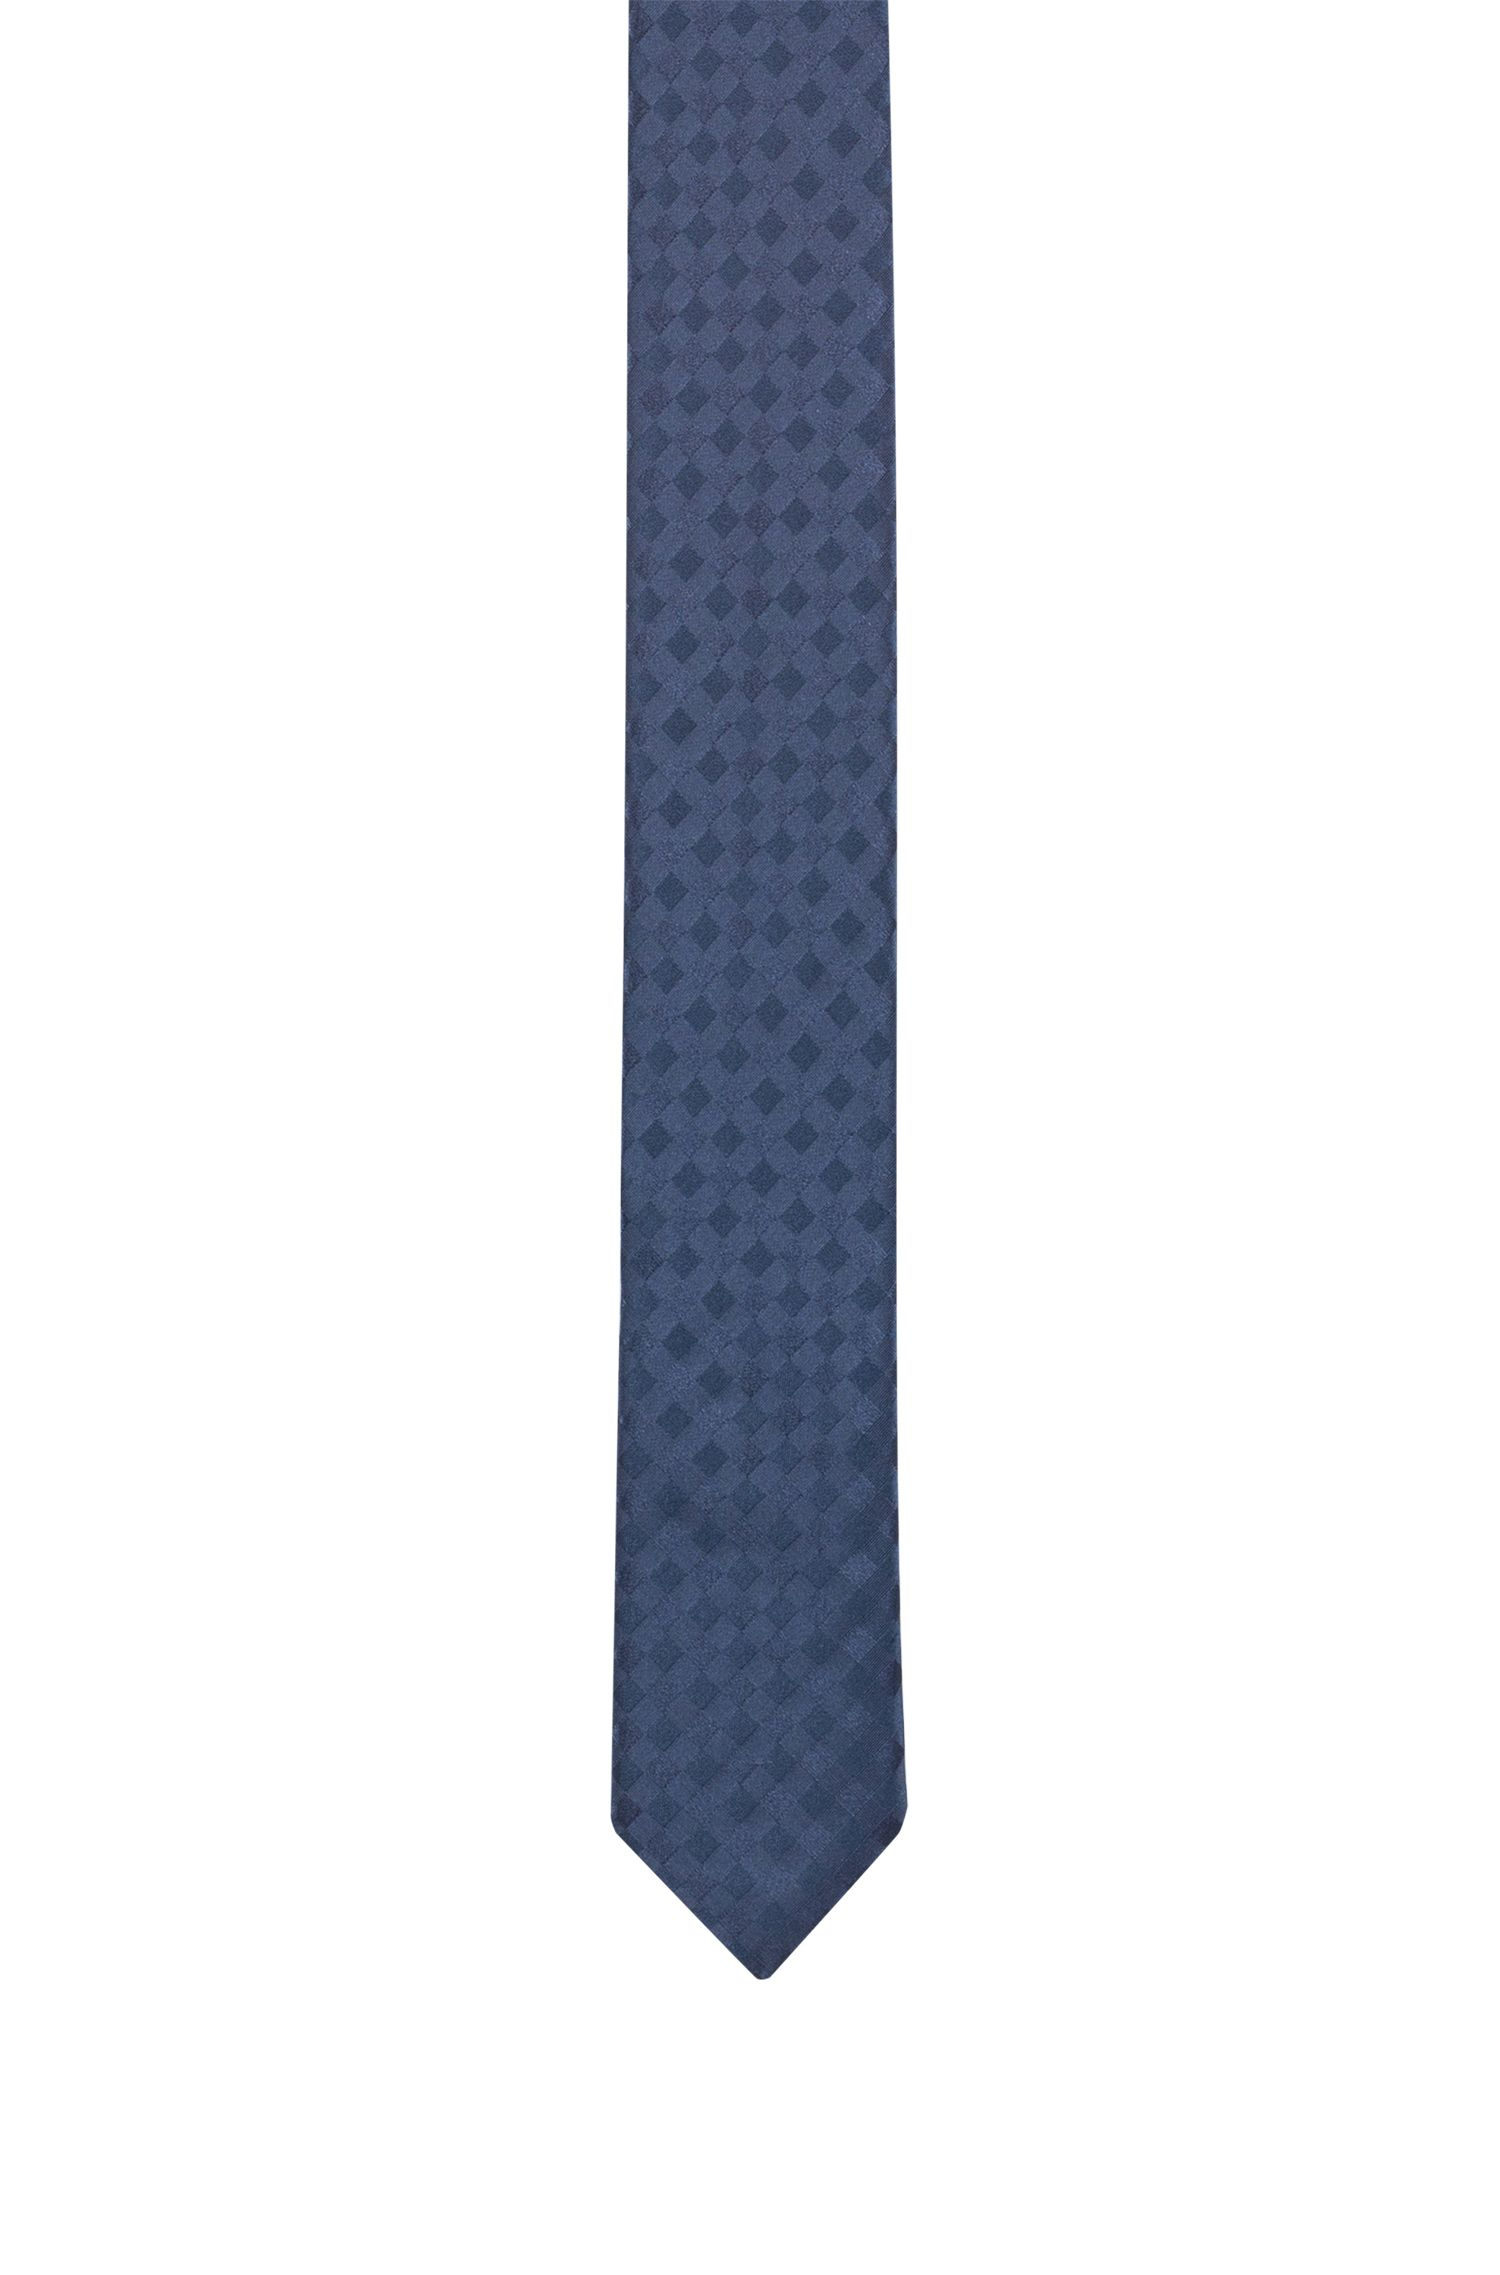 Silk-jacquard tie with tonal plain check